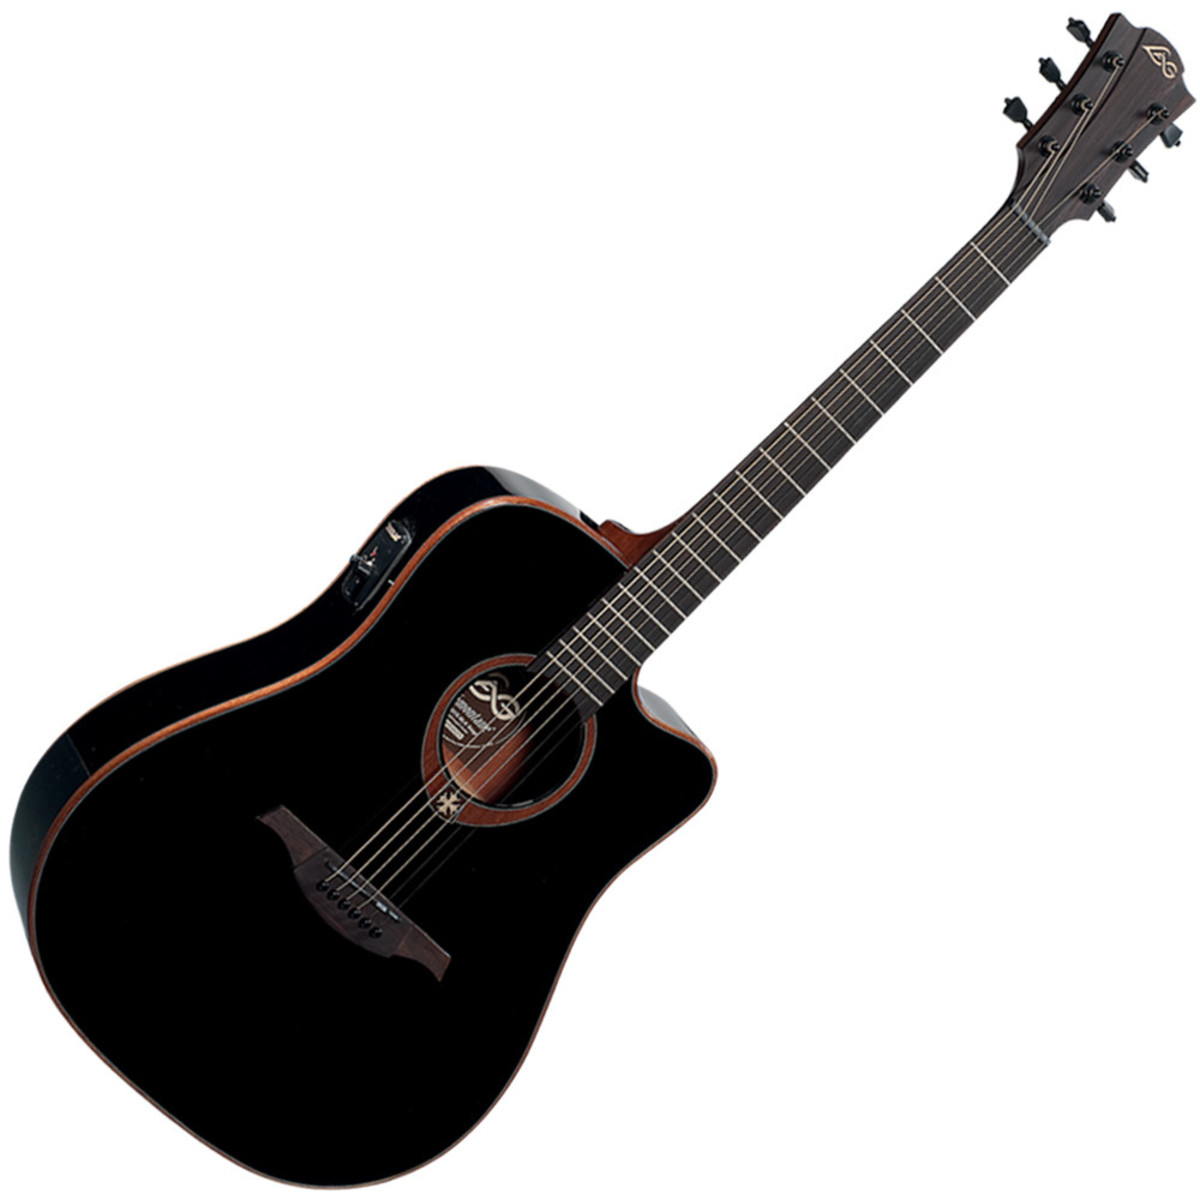 lag t100dce dreadnought cutaway electro acoustic guitar black b stock at. Black Bedroom Furniture Sets. Home Design Ideas